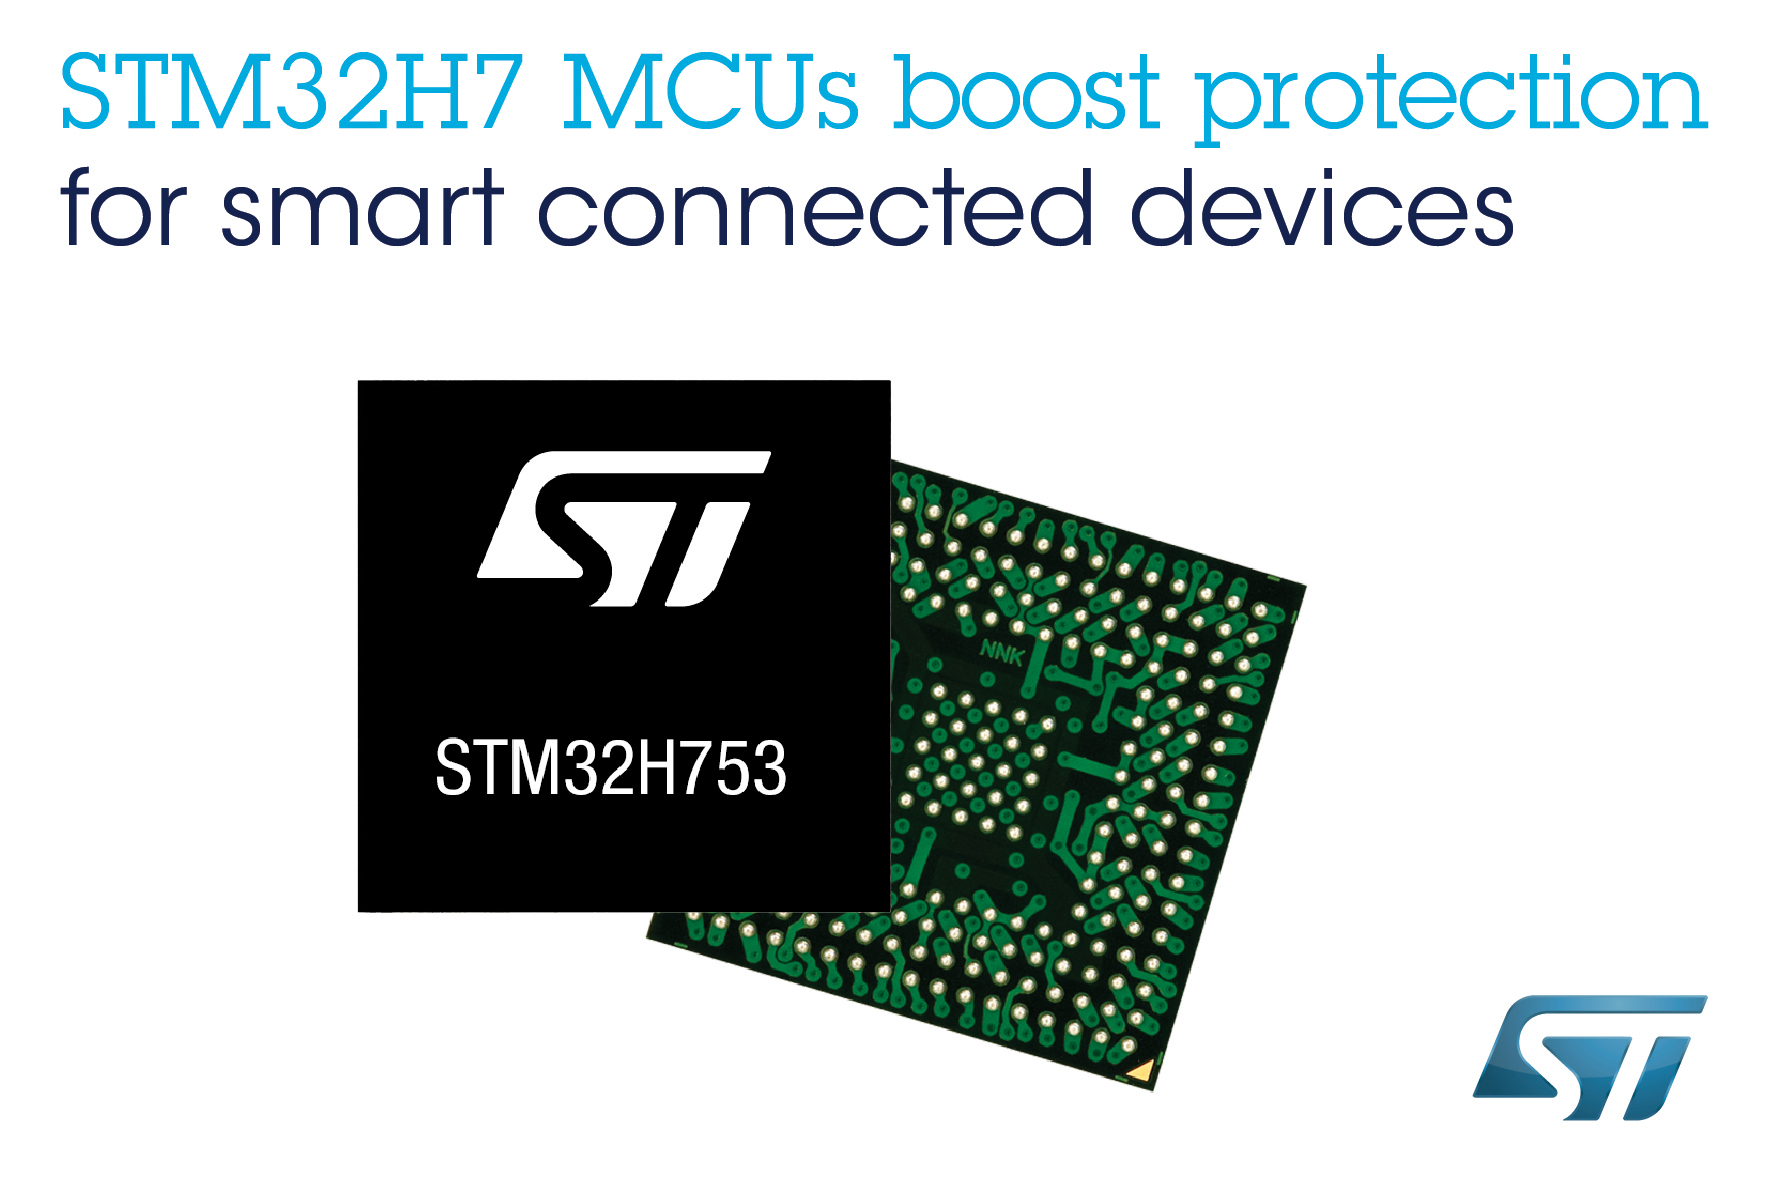 Stmicroelectronics U2019 Stm32h7 Series Mcu Leverages The New